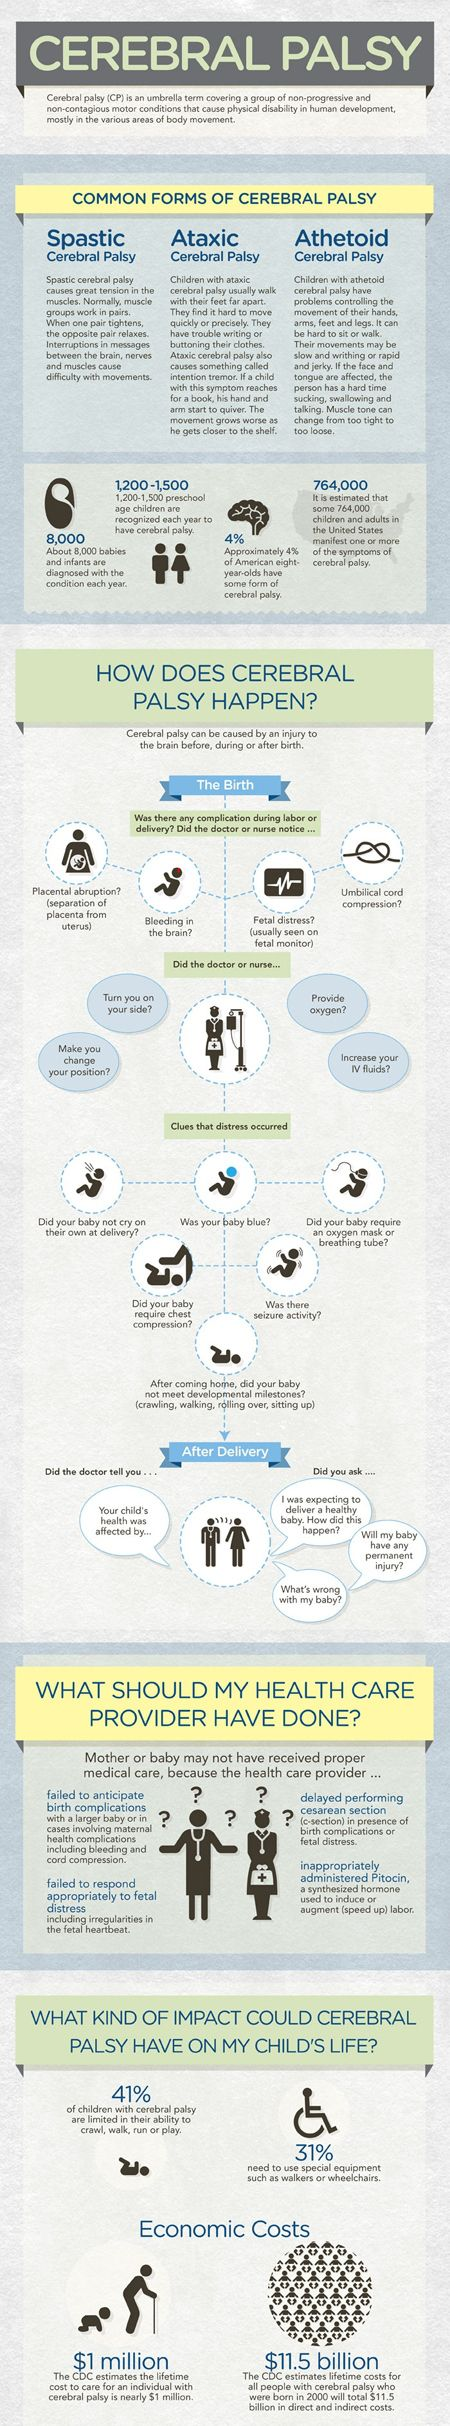 cerebral-palsy-infographic-450